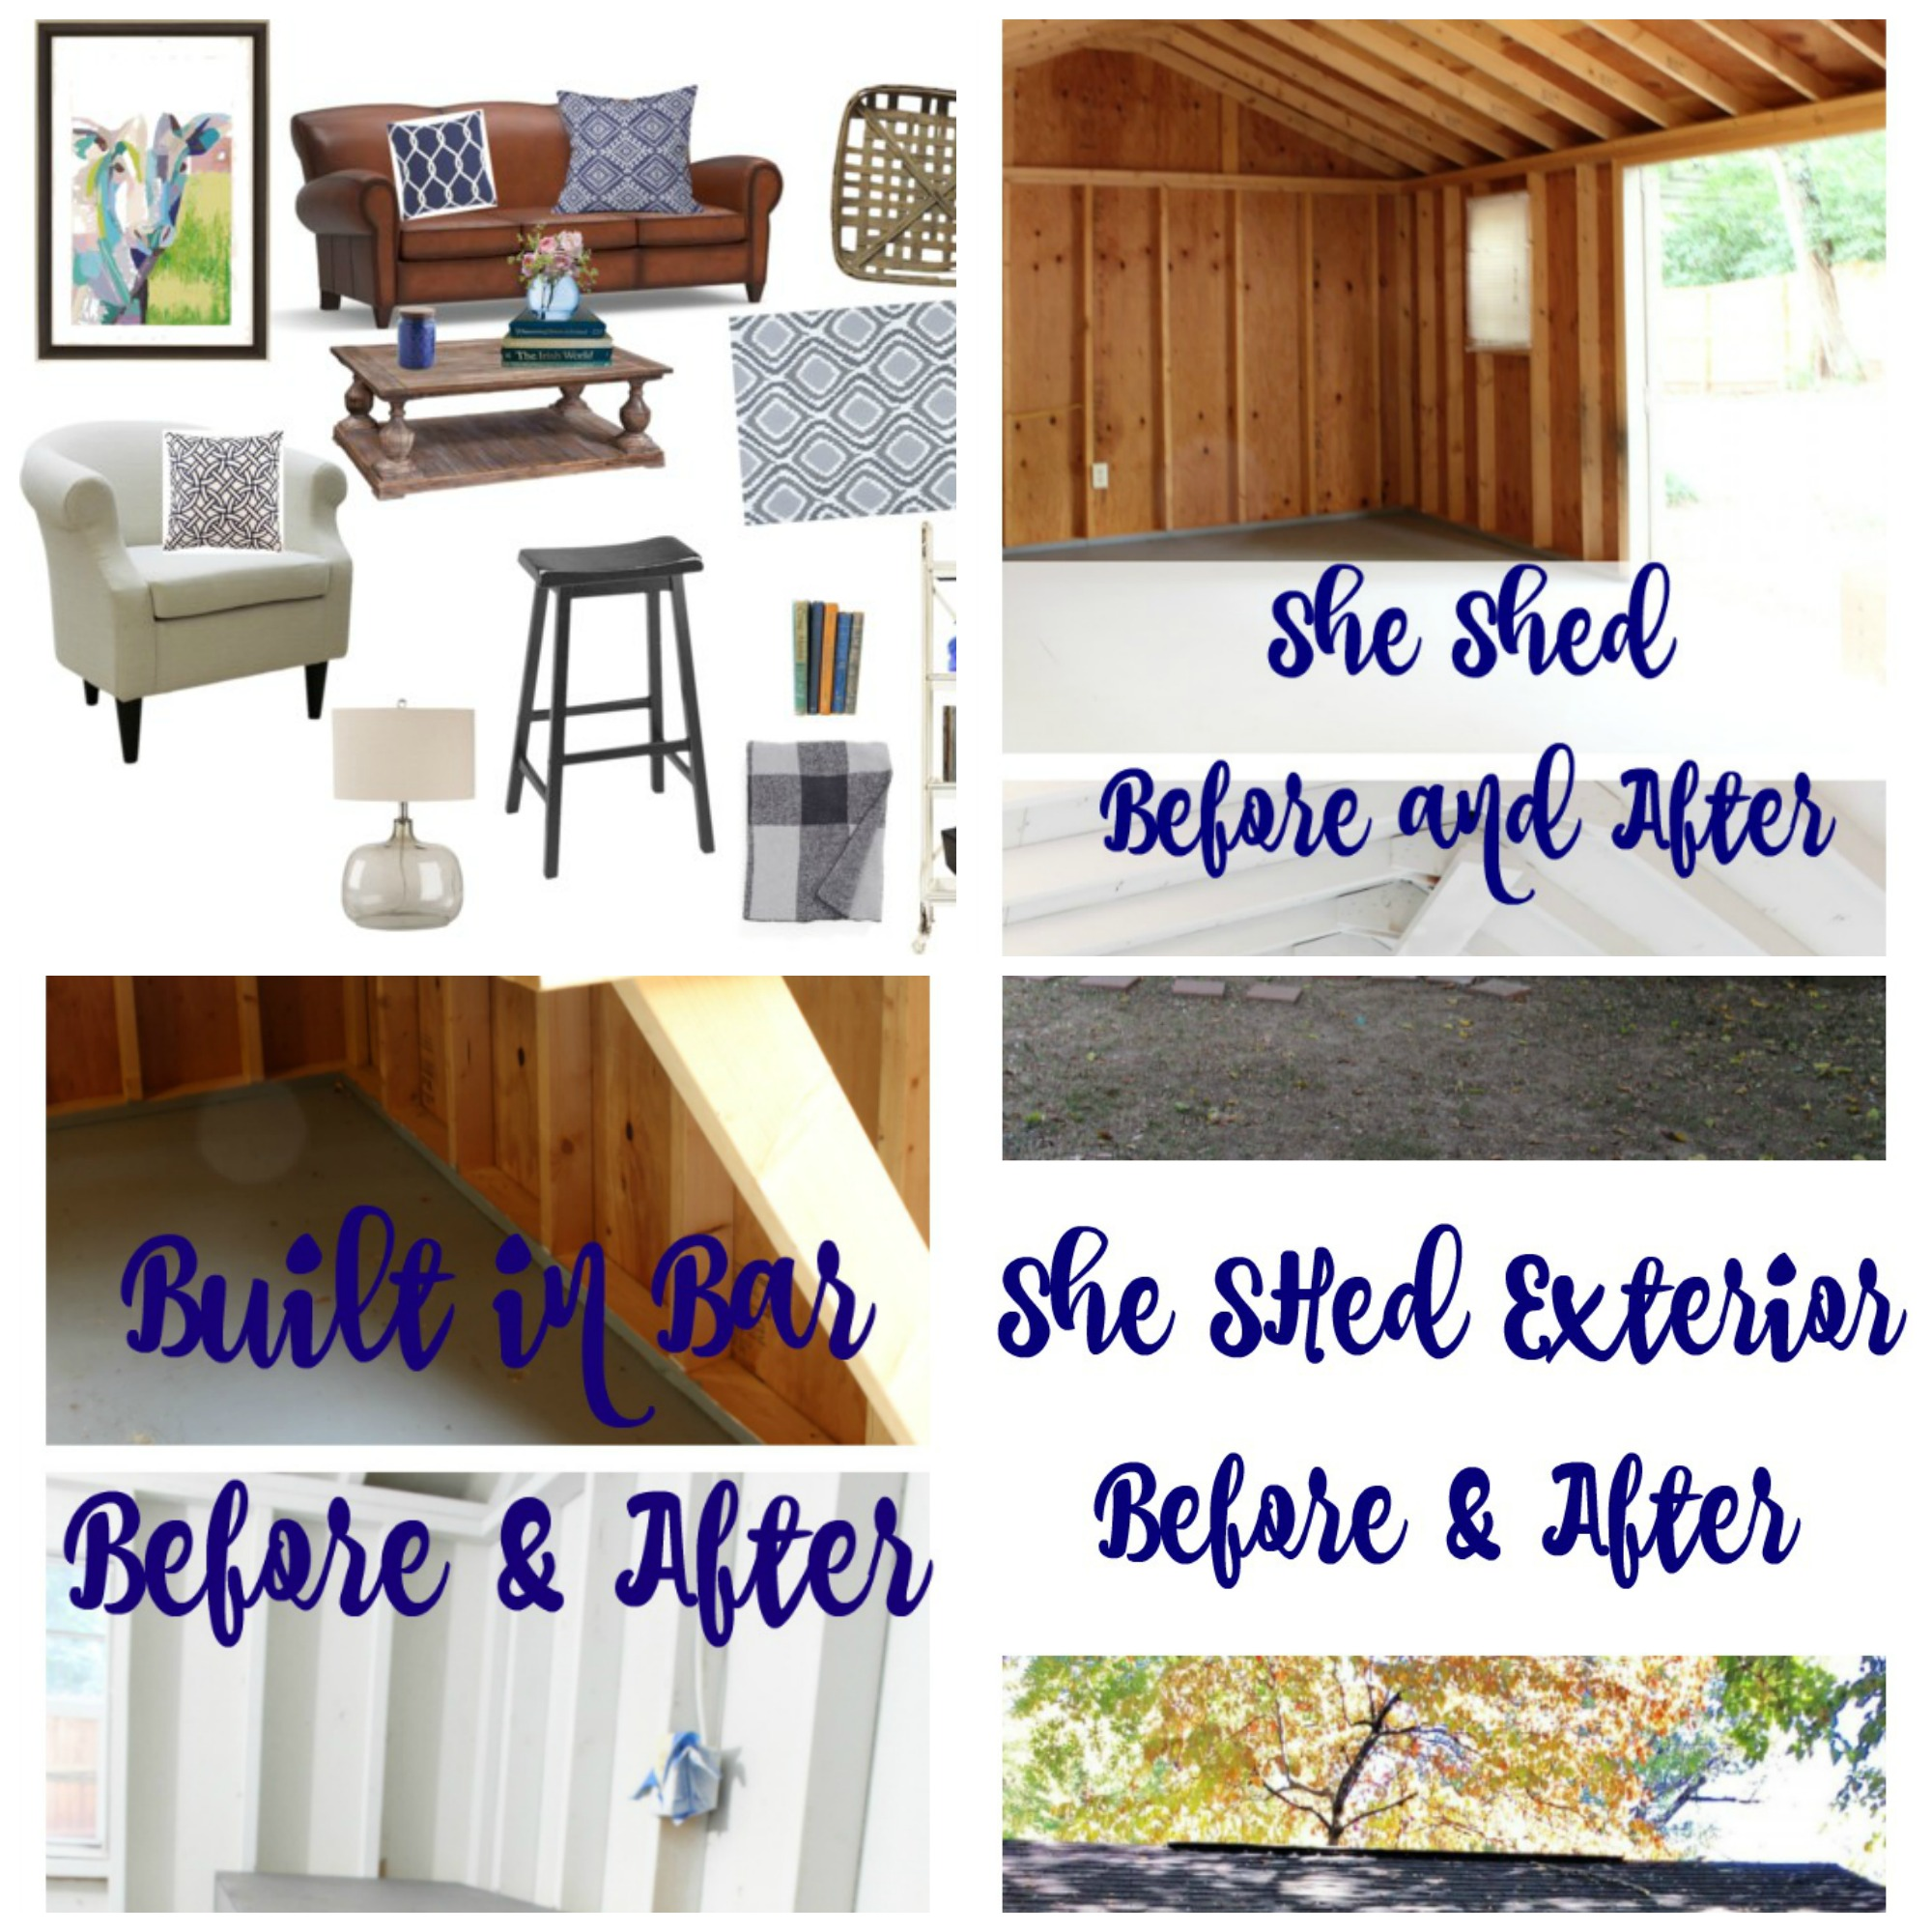 One Room Challenge She Shed - Week 5